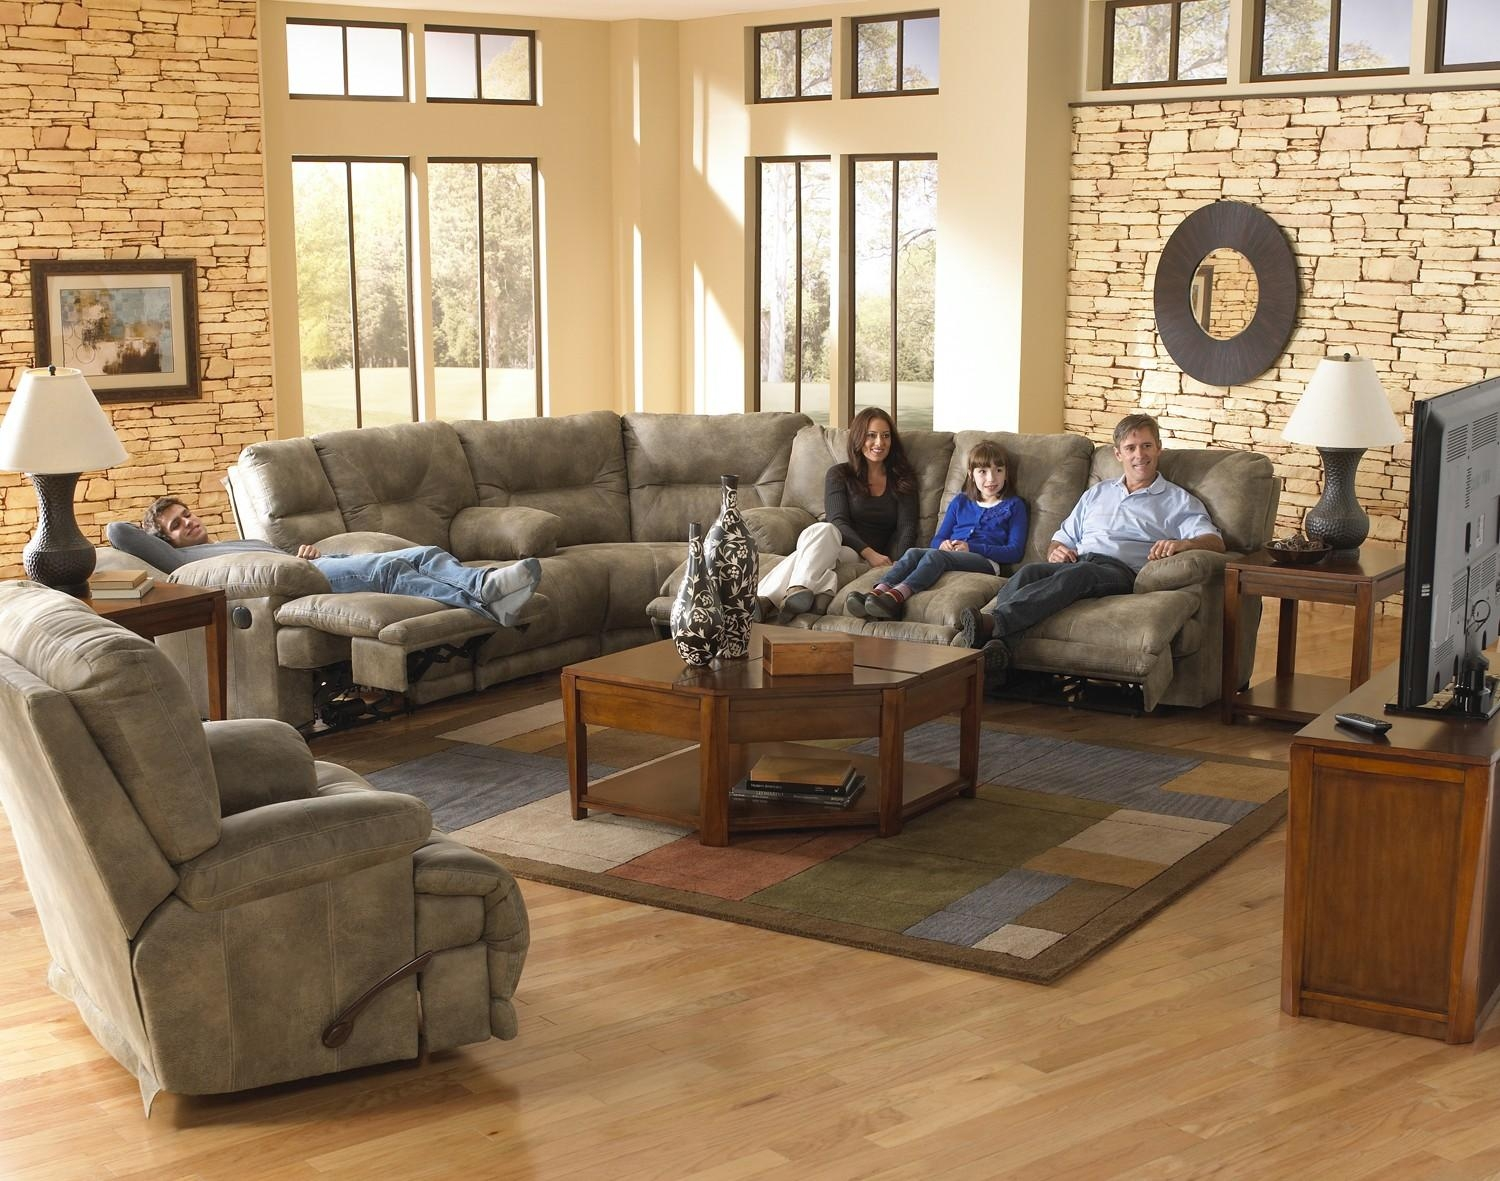 Catnapper Voyager Lay Flat 3 Pc Sectional W/ Triple Recline Sofa With Regard To Catnapper Reclining Sofas (Image 13 of 20)